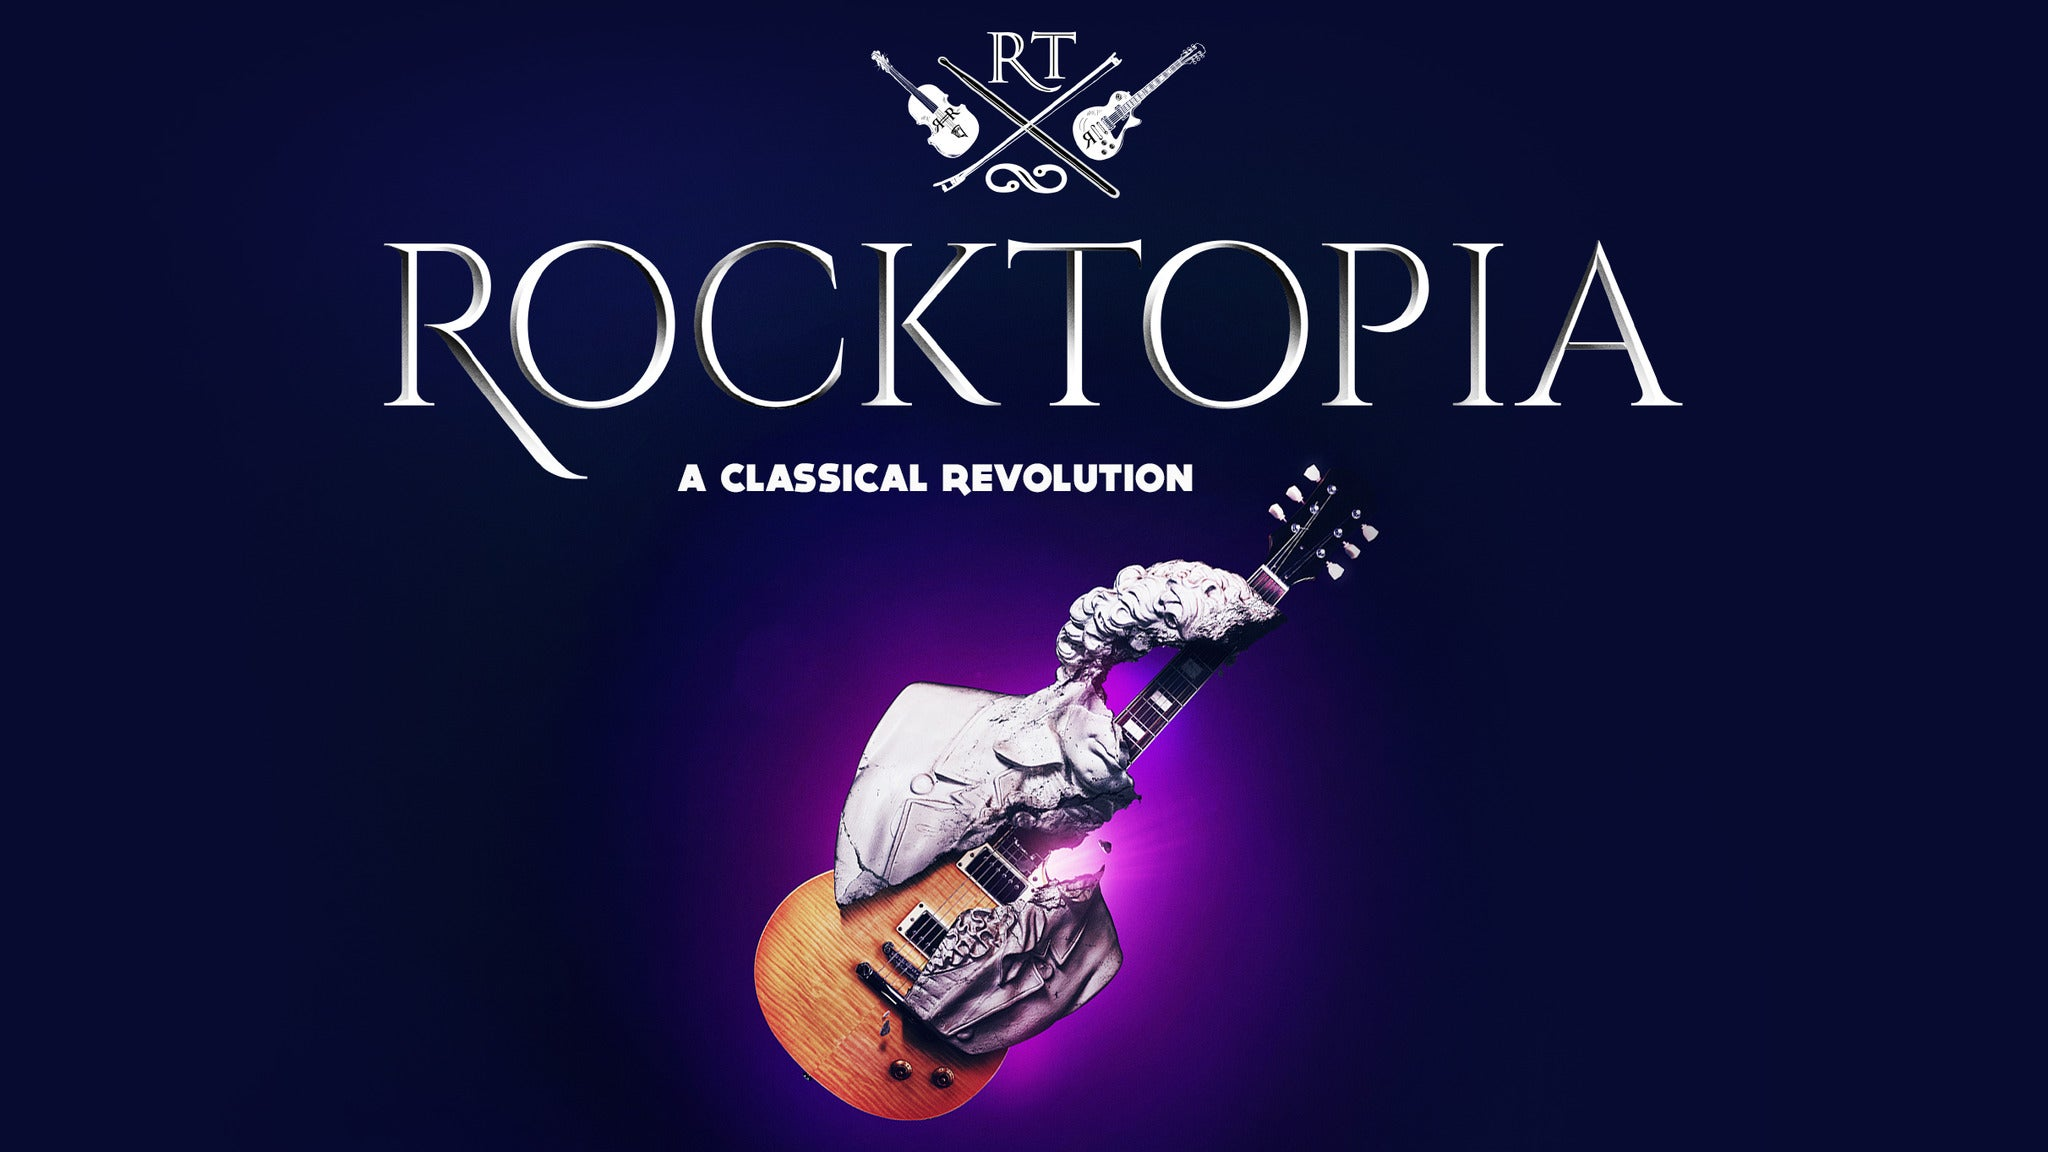 Rocktopia at Tabernacle presented by Cricket Wireless